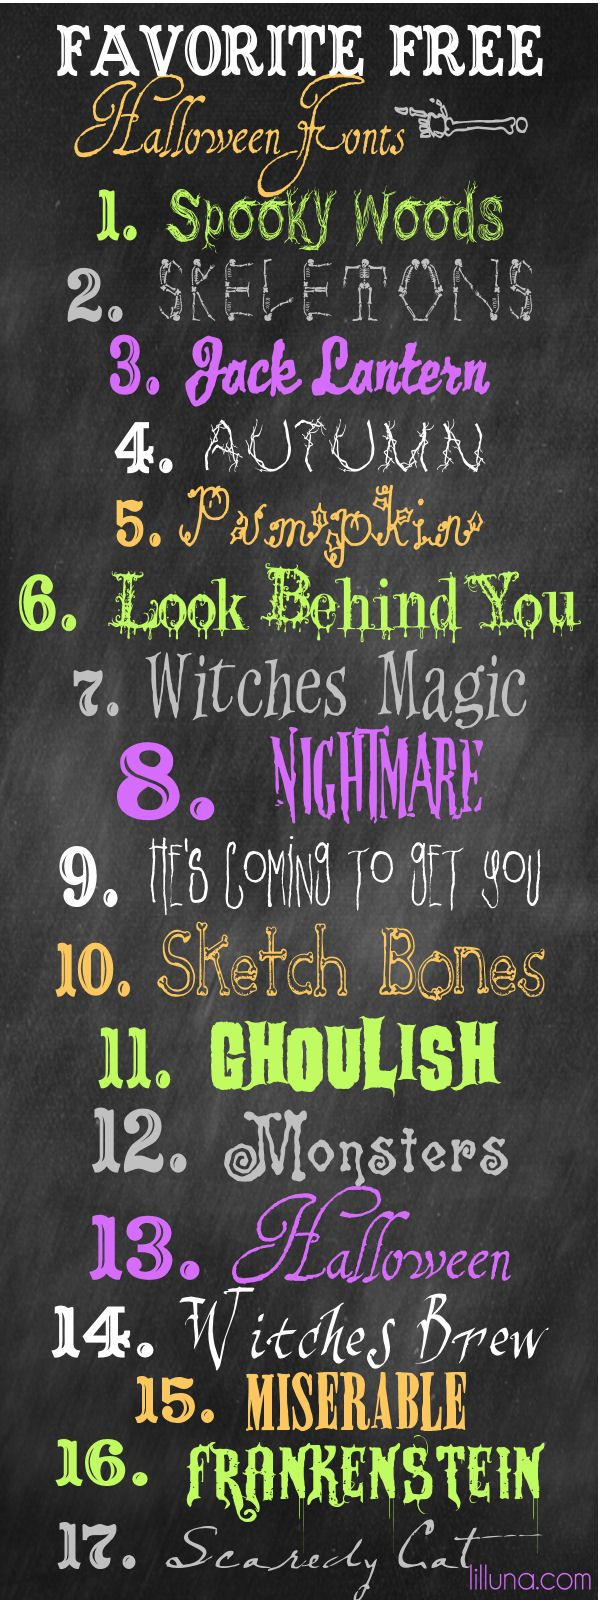 ALL are free - watch #11 Ghoulish - DON'T CLICK any of the GREEN Download Buttons - click the download button right under the font.  Favorite Free Halloween Fonts on { lilluna.com }